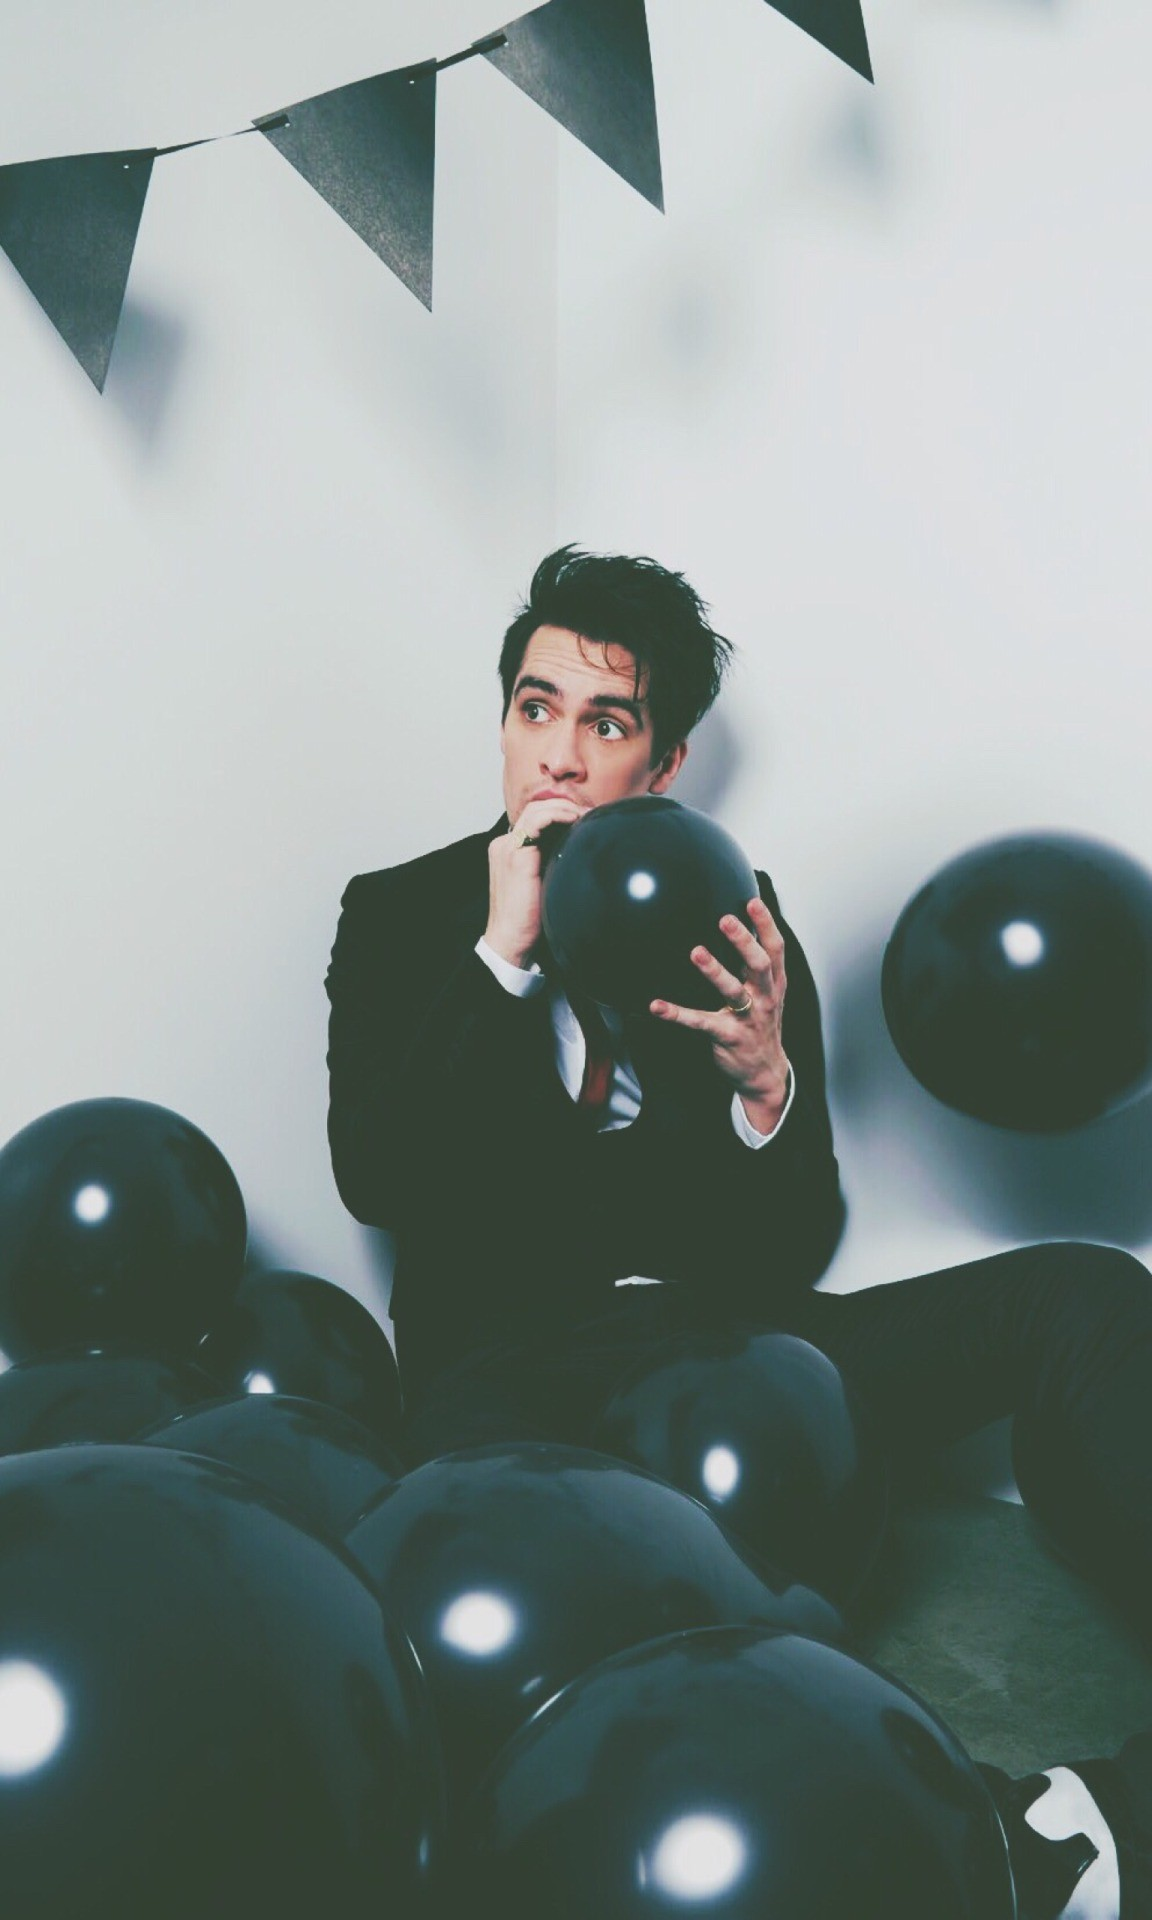 25 best ideas about Panic! at the disco on Pinterest | Patd .